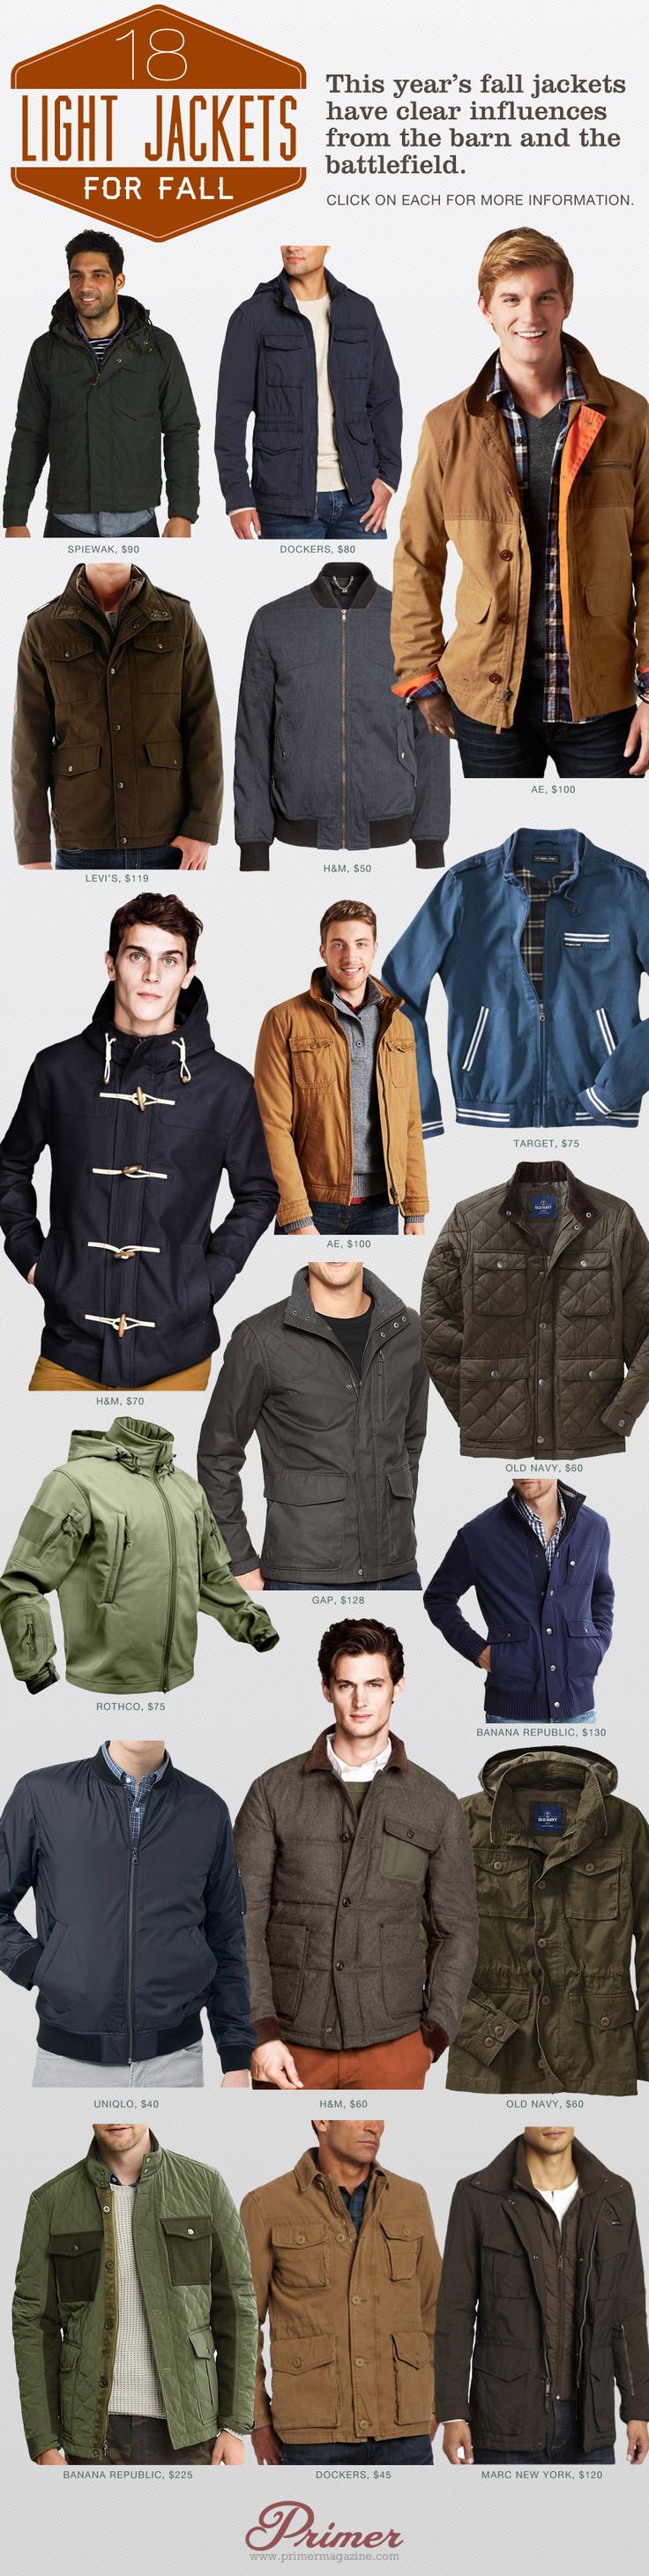 This year's fall jackets have clear influences from the barn and the battlefield.